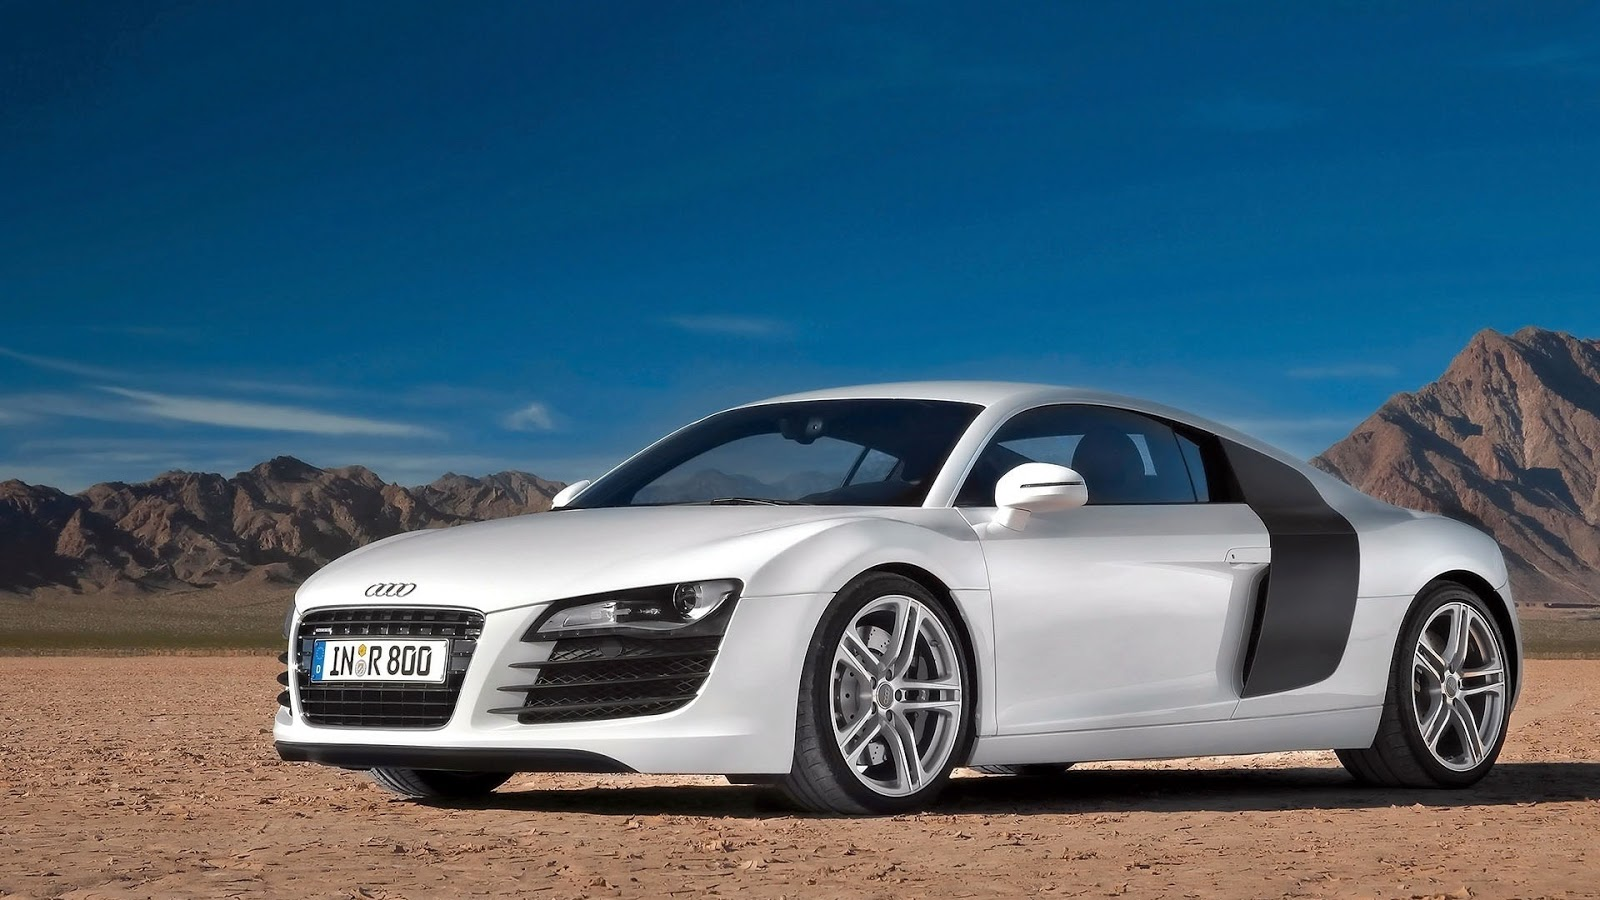 Top 27 Most Beautiful And Dashing AUDI CAR Wallpapers In HD